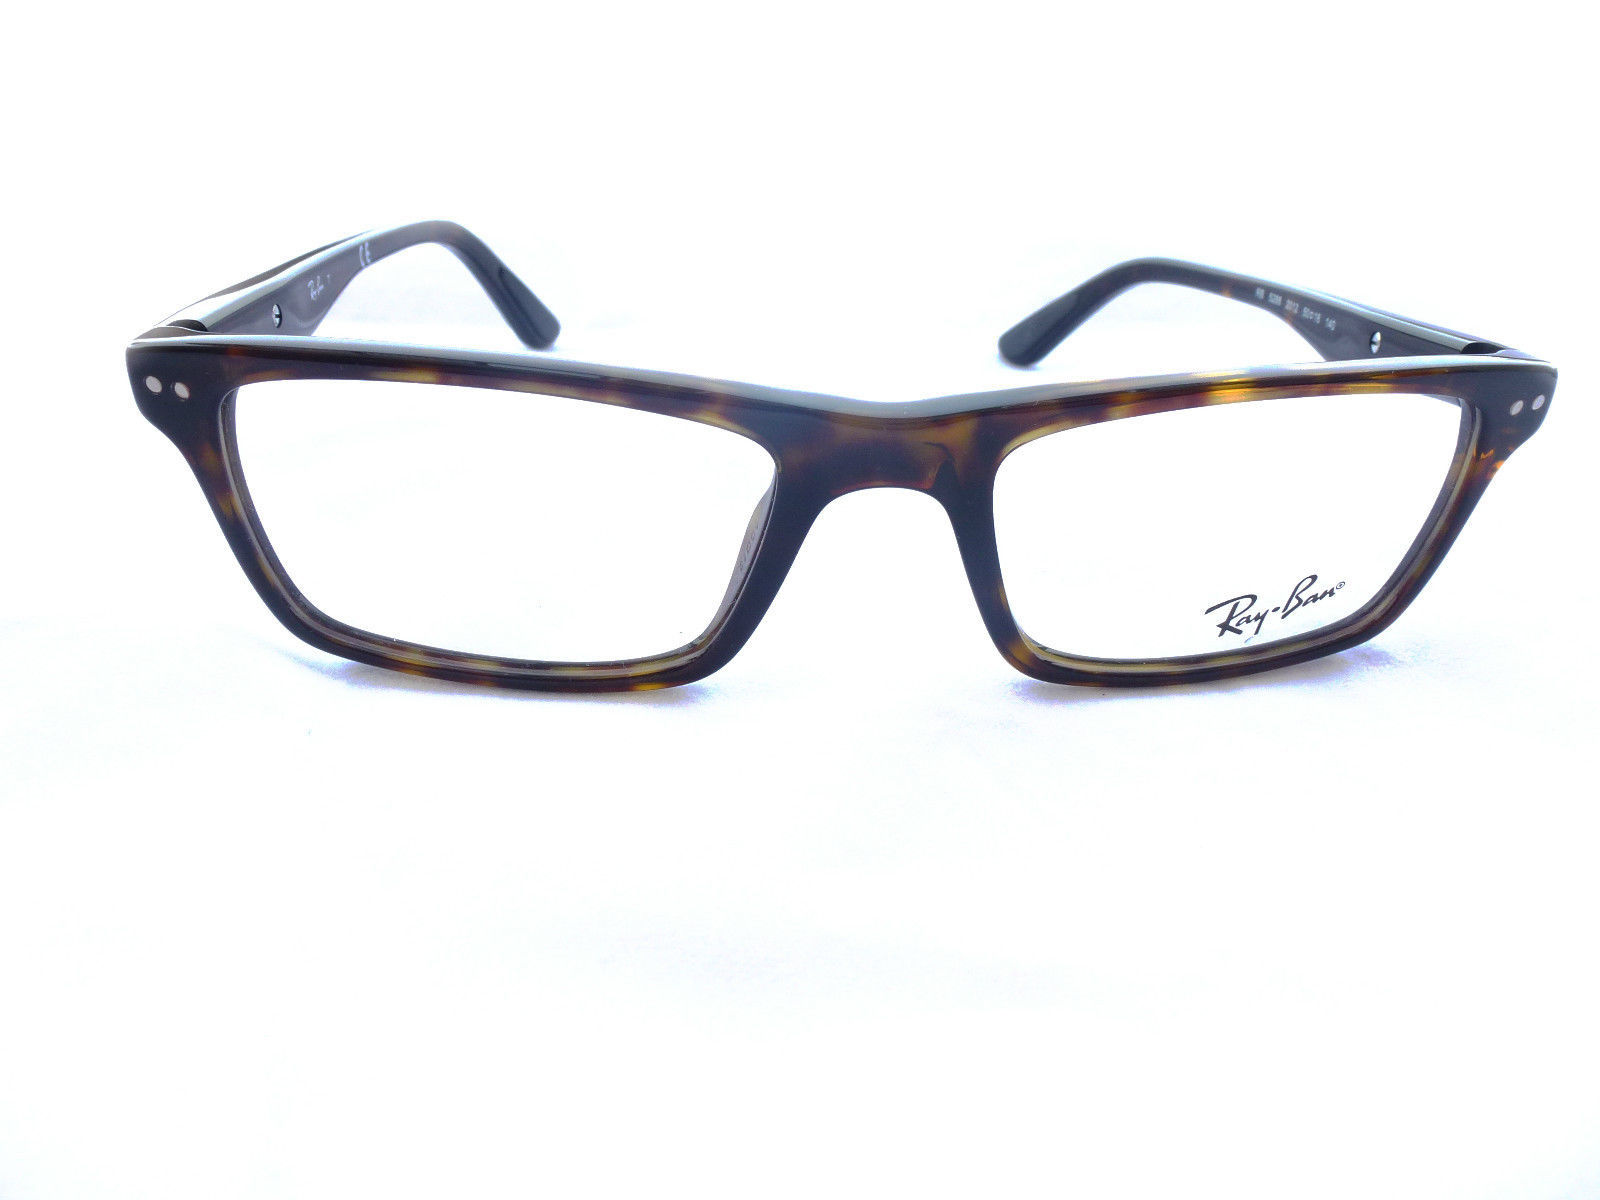 Ray Ban Reading Glasses Frame : Ray Ban Glasses Reading